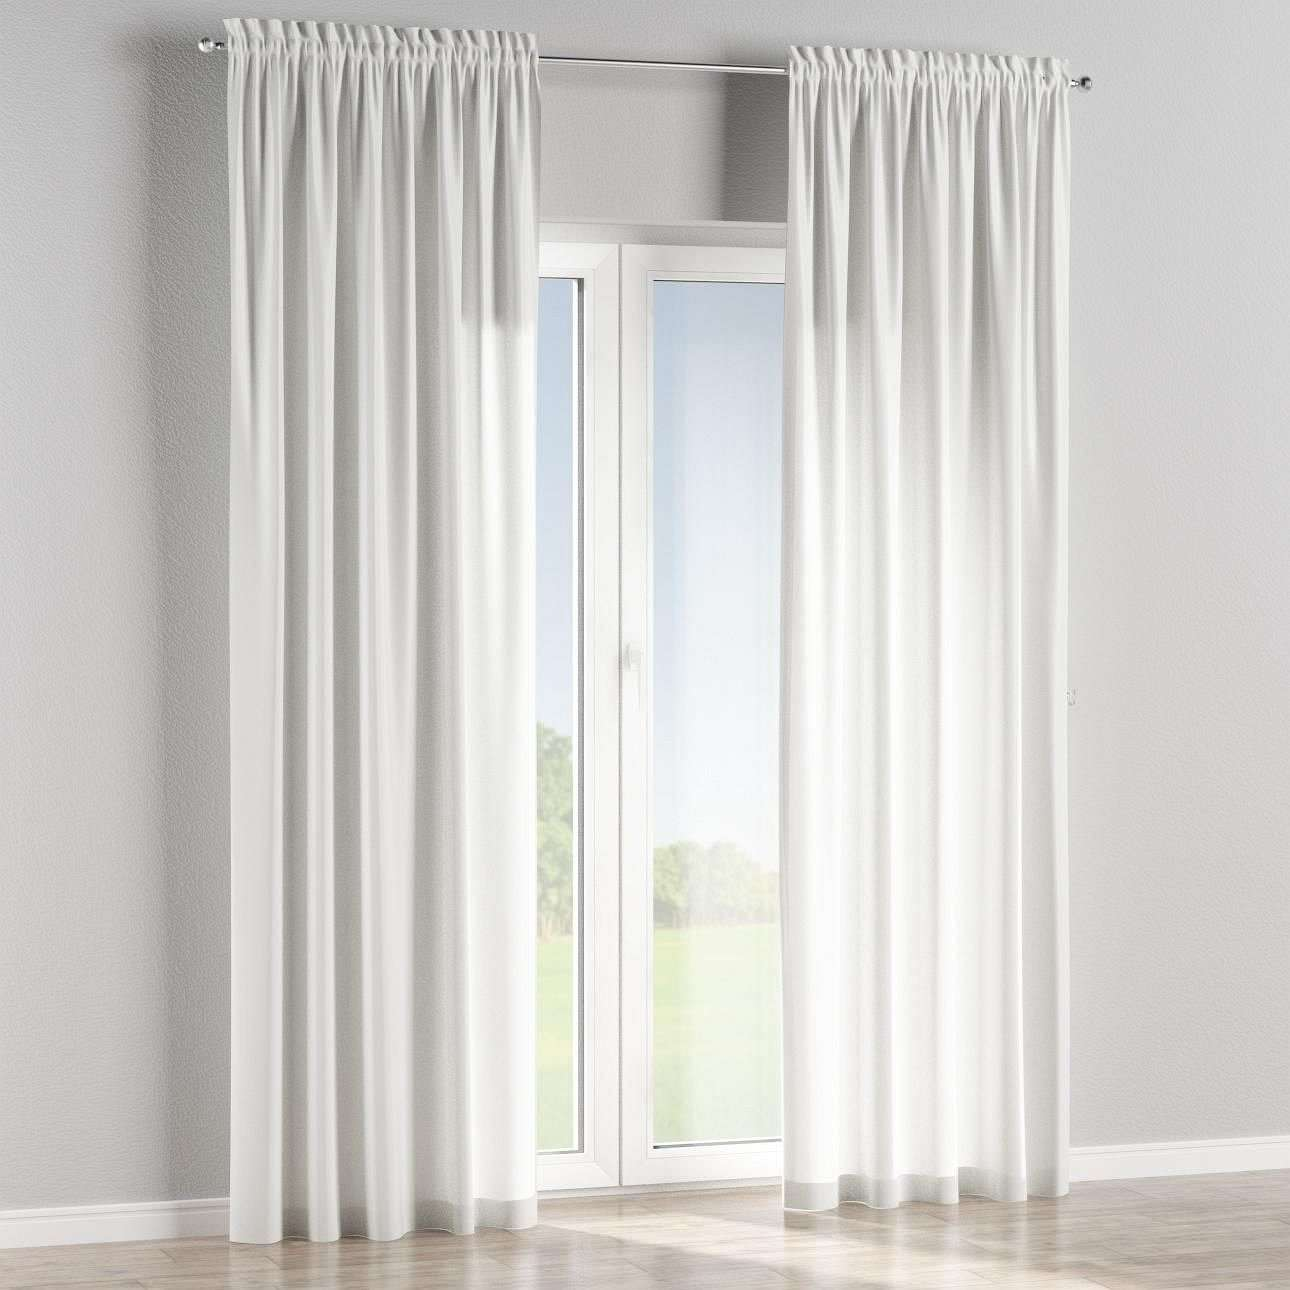 Slot and frill lined curtains in collection Ashley, fabric: 137-44